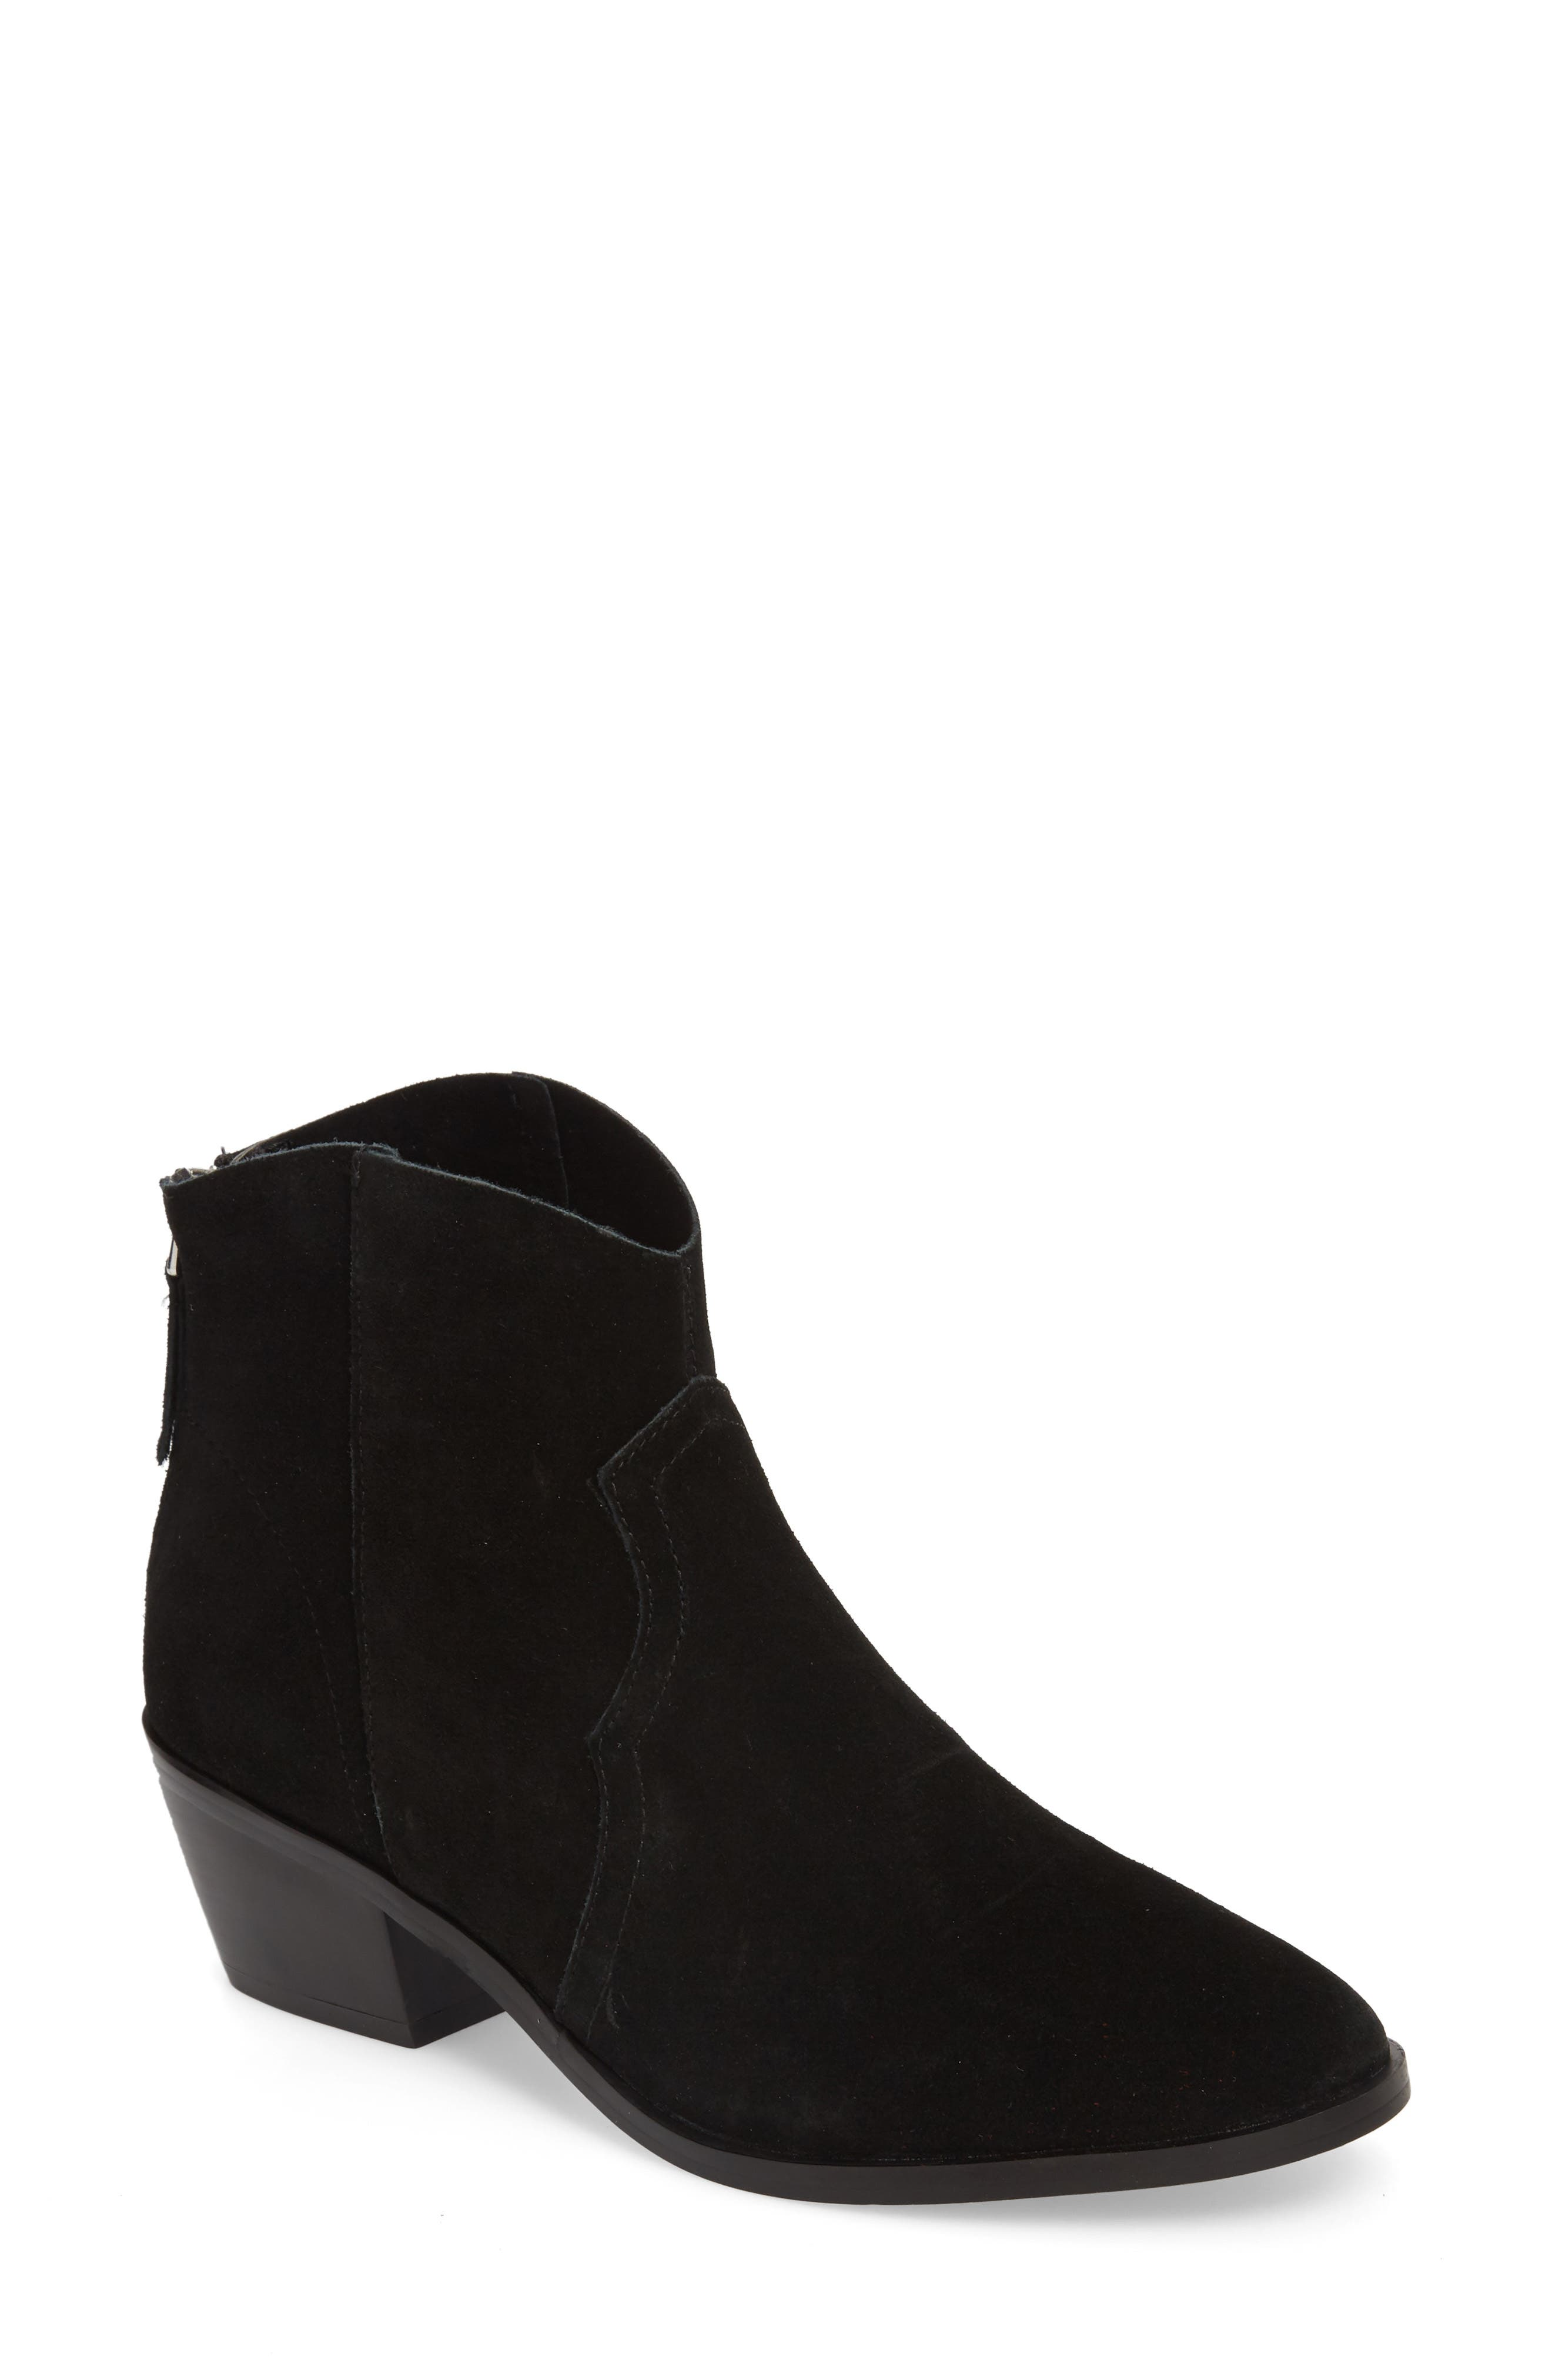 Betty Western Bootie,                         Main,                         color, Black